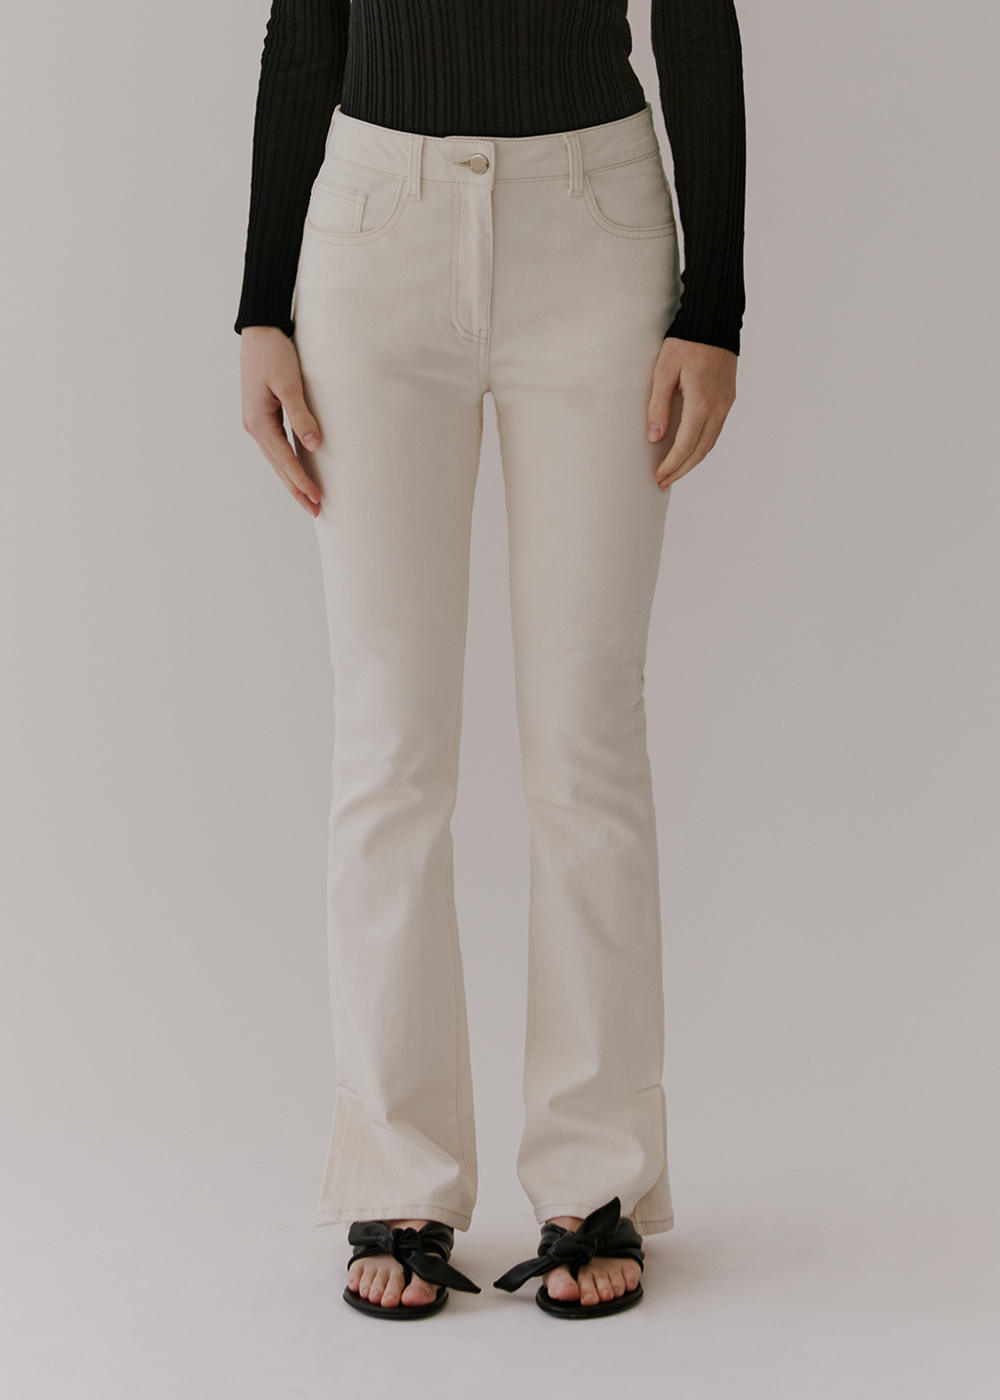 BOOTCUT DENIM - IVORY WHITE